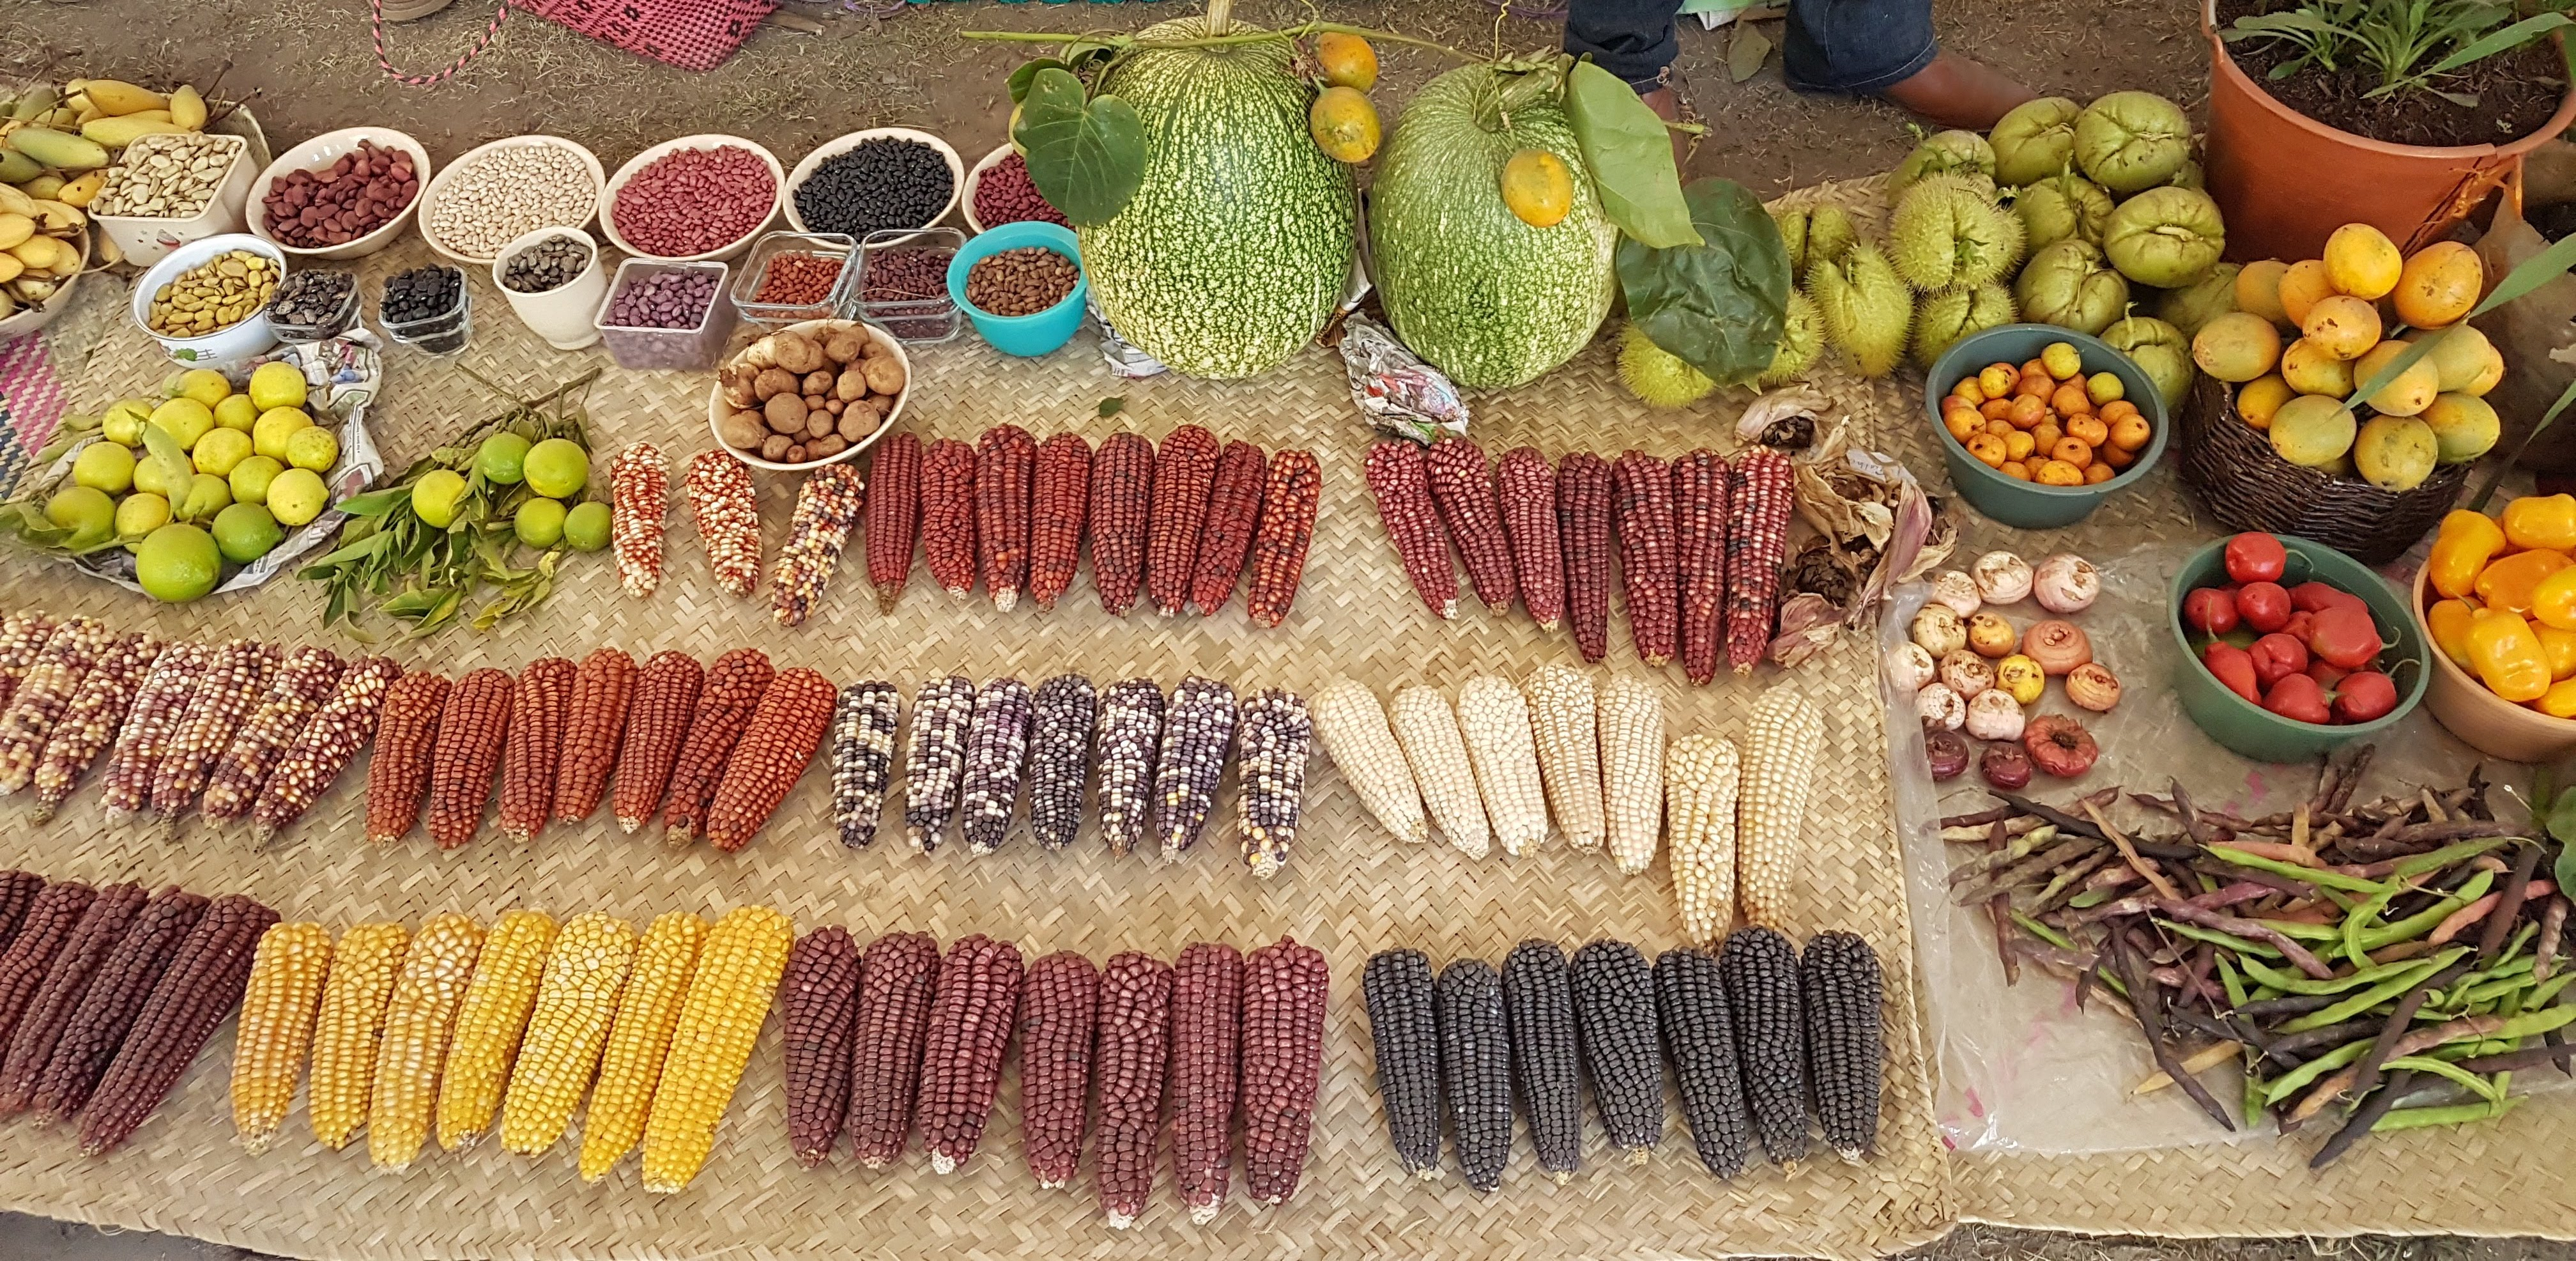 Traditional milpa products: native maize, beans, squash, chilies and other local fruits and vegetables. (Photo: Martha Willcox/CIMMYT)